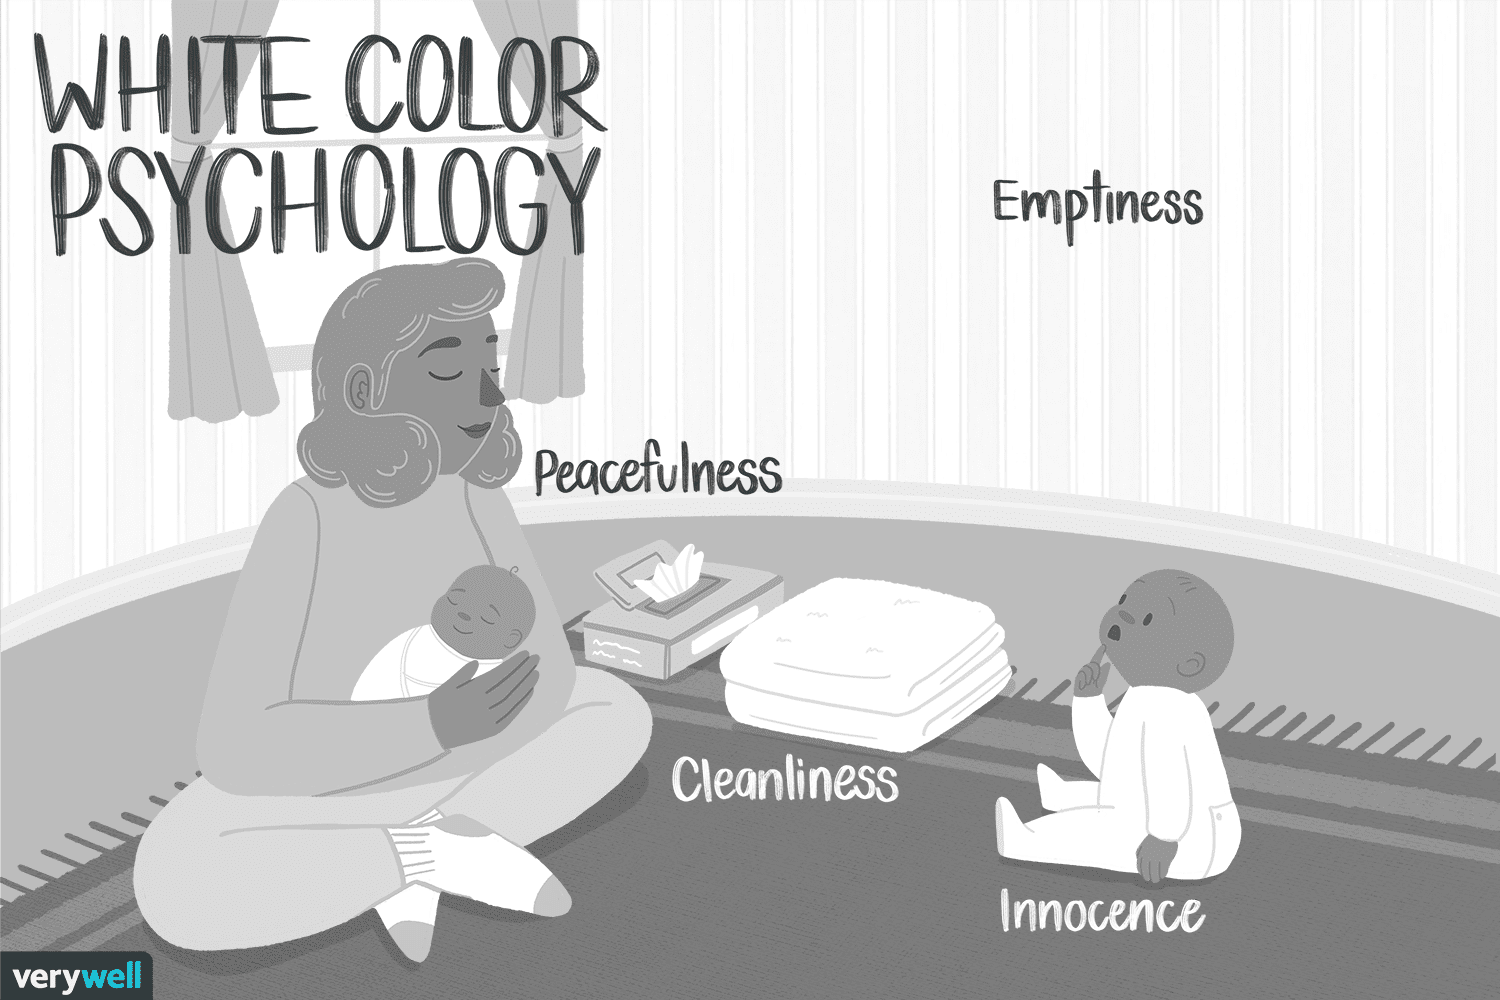 The color psychology of white